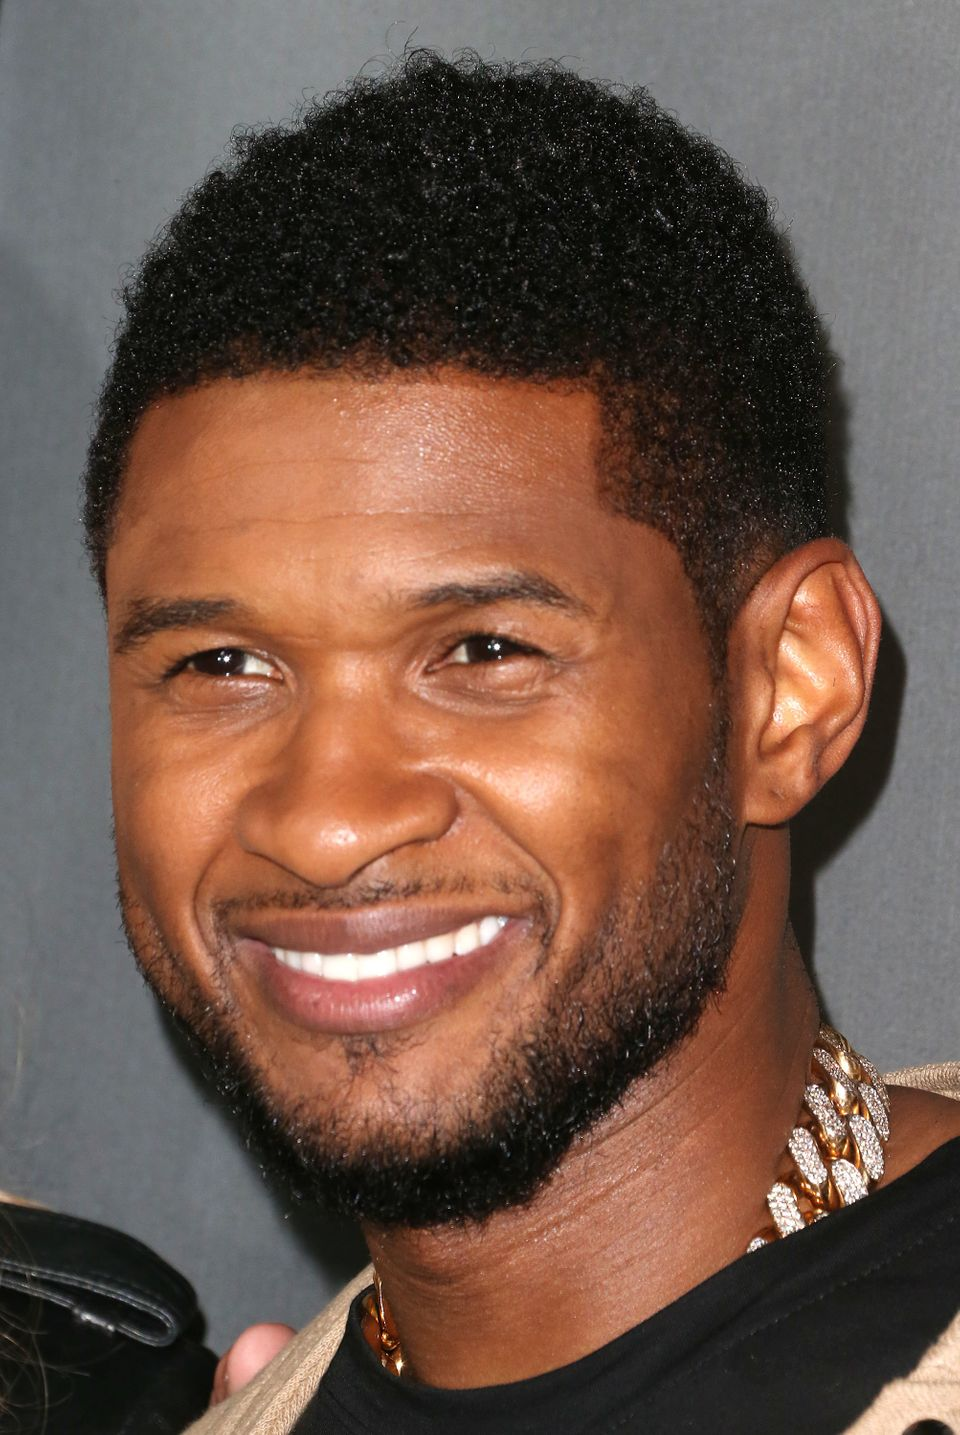 WEST HOLLYWOOD, CA - MAY 08:  Recording artist Usher attends NBC's 'The Voice' Season 4 Red Carpet Event at the House of Blue